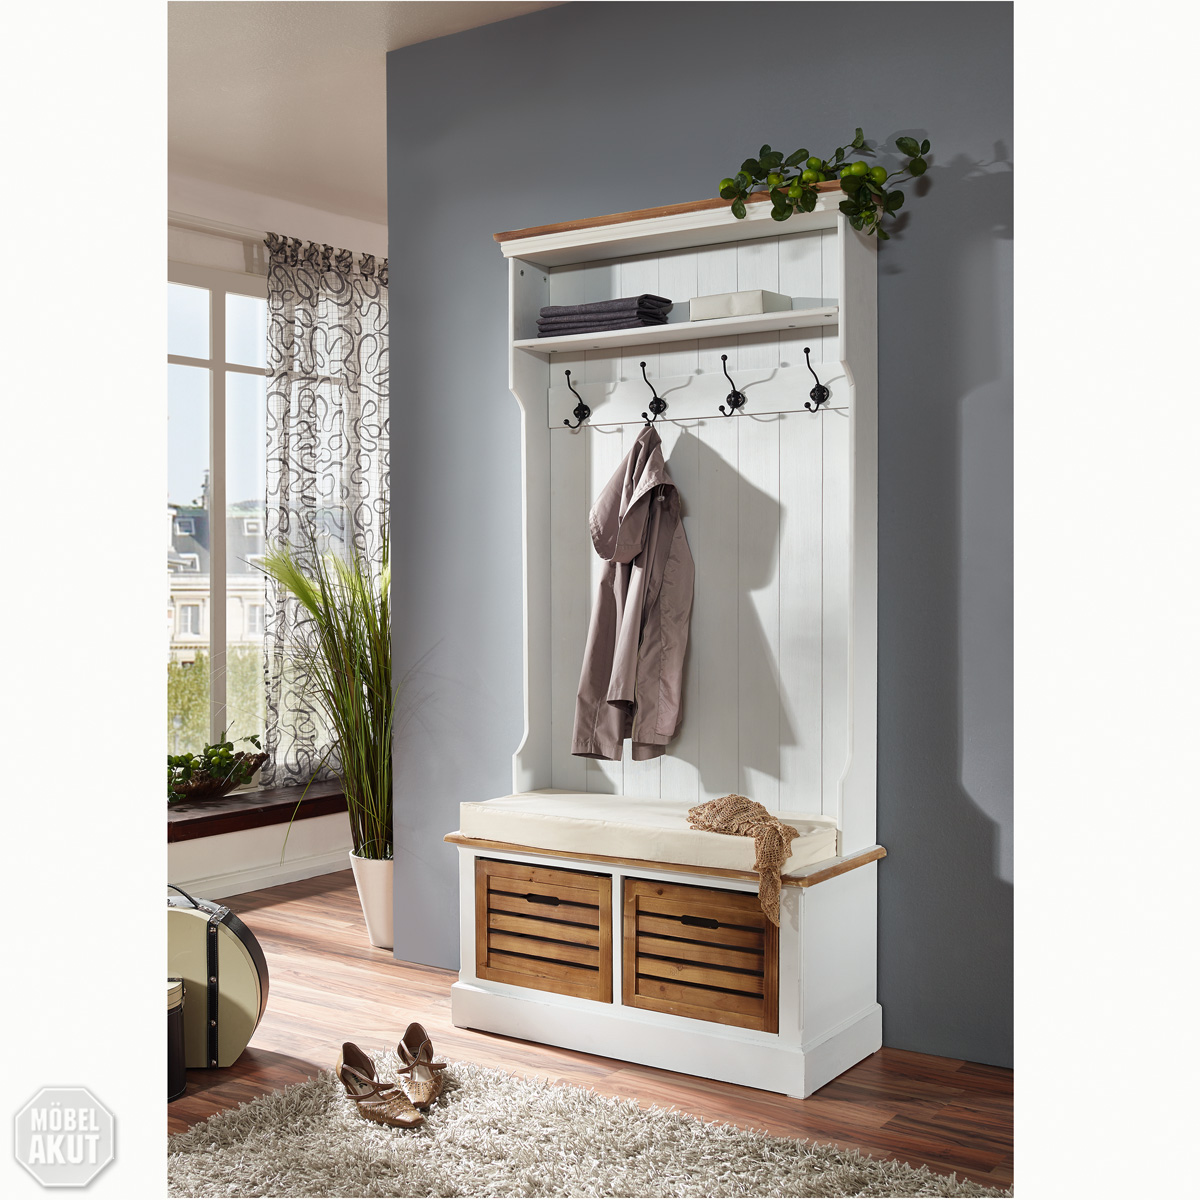 garderobe paris in paulownia holz weiss vintage look landhaus ebay. Black Bedroom Furniture Sets. Home Design Ideas